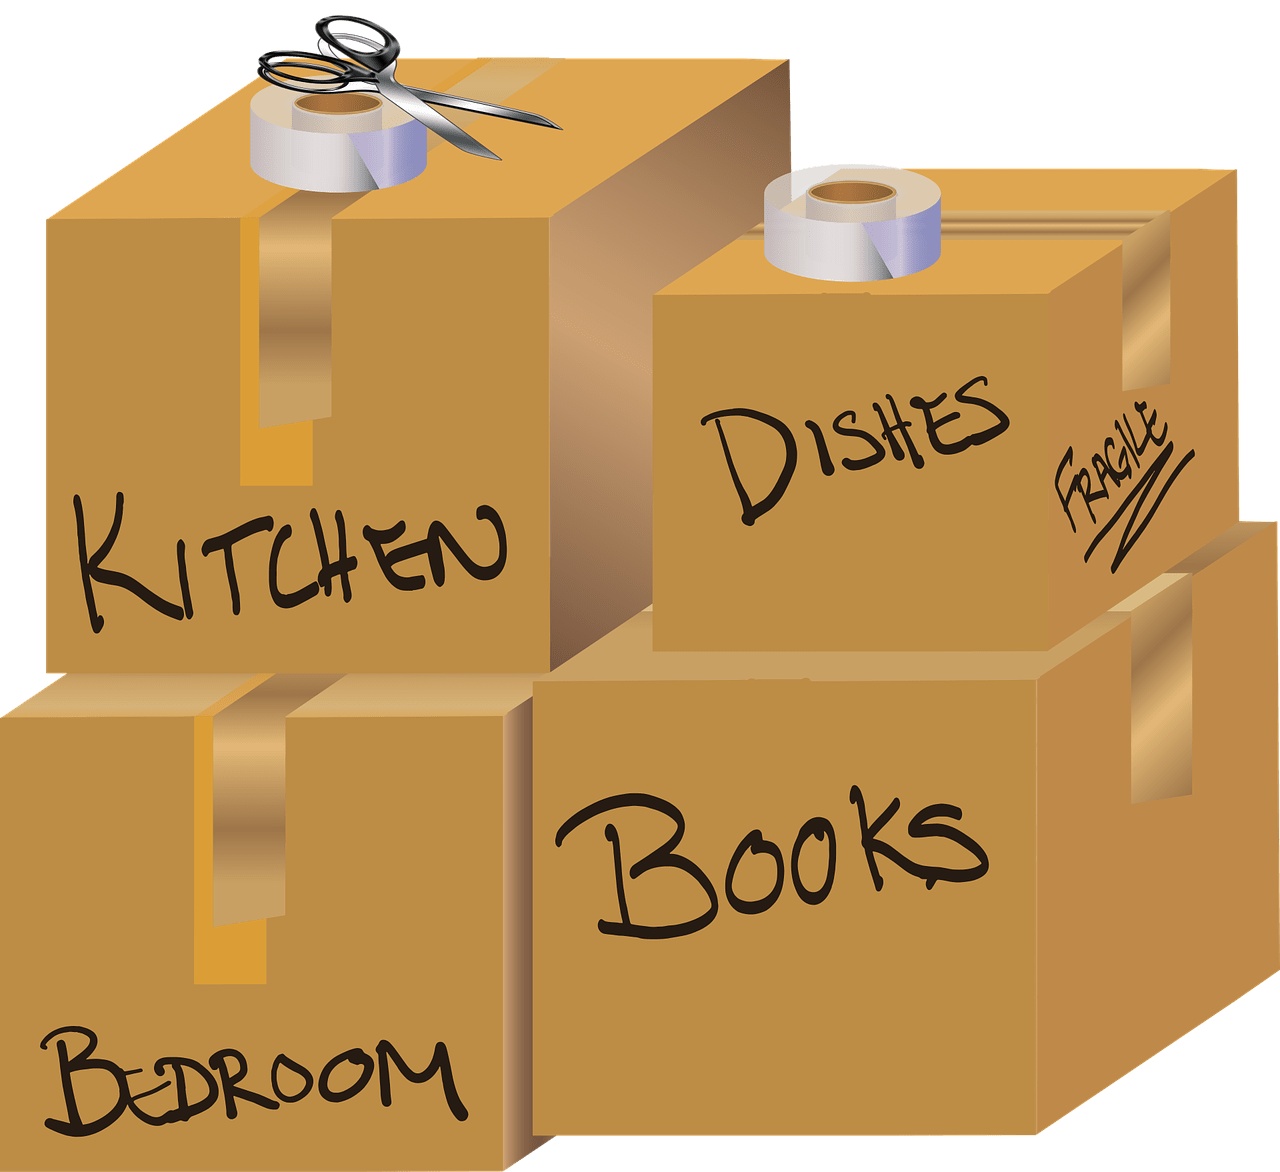 Find Out Who Your Friends Are: Moving Day Brings Out the Truth